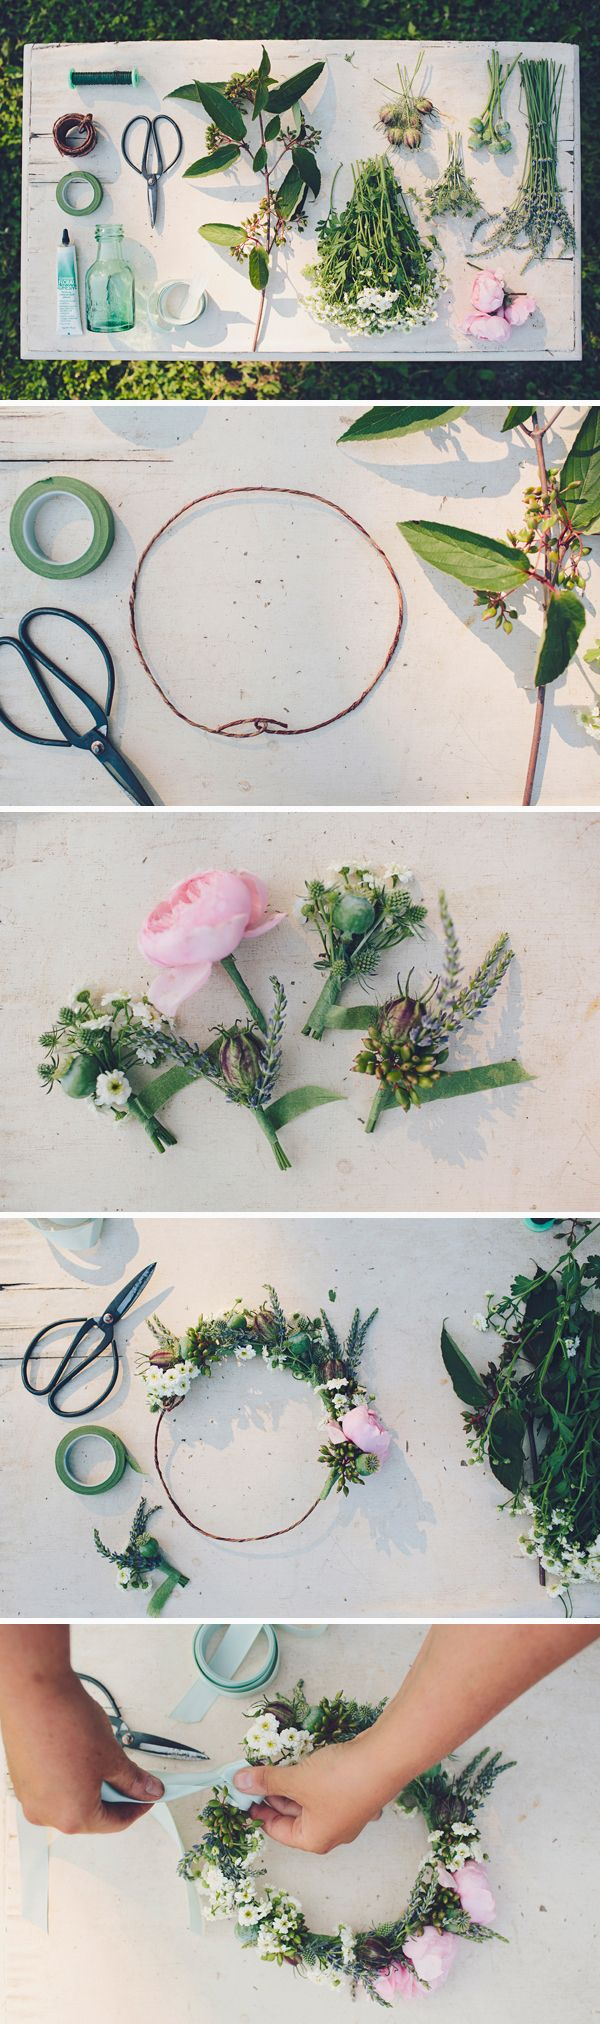 Floral Crown // DIY - walk in love. @kozientara for our next, more sturdy versions. :)